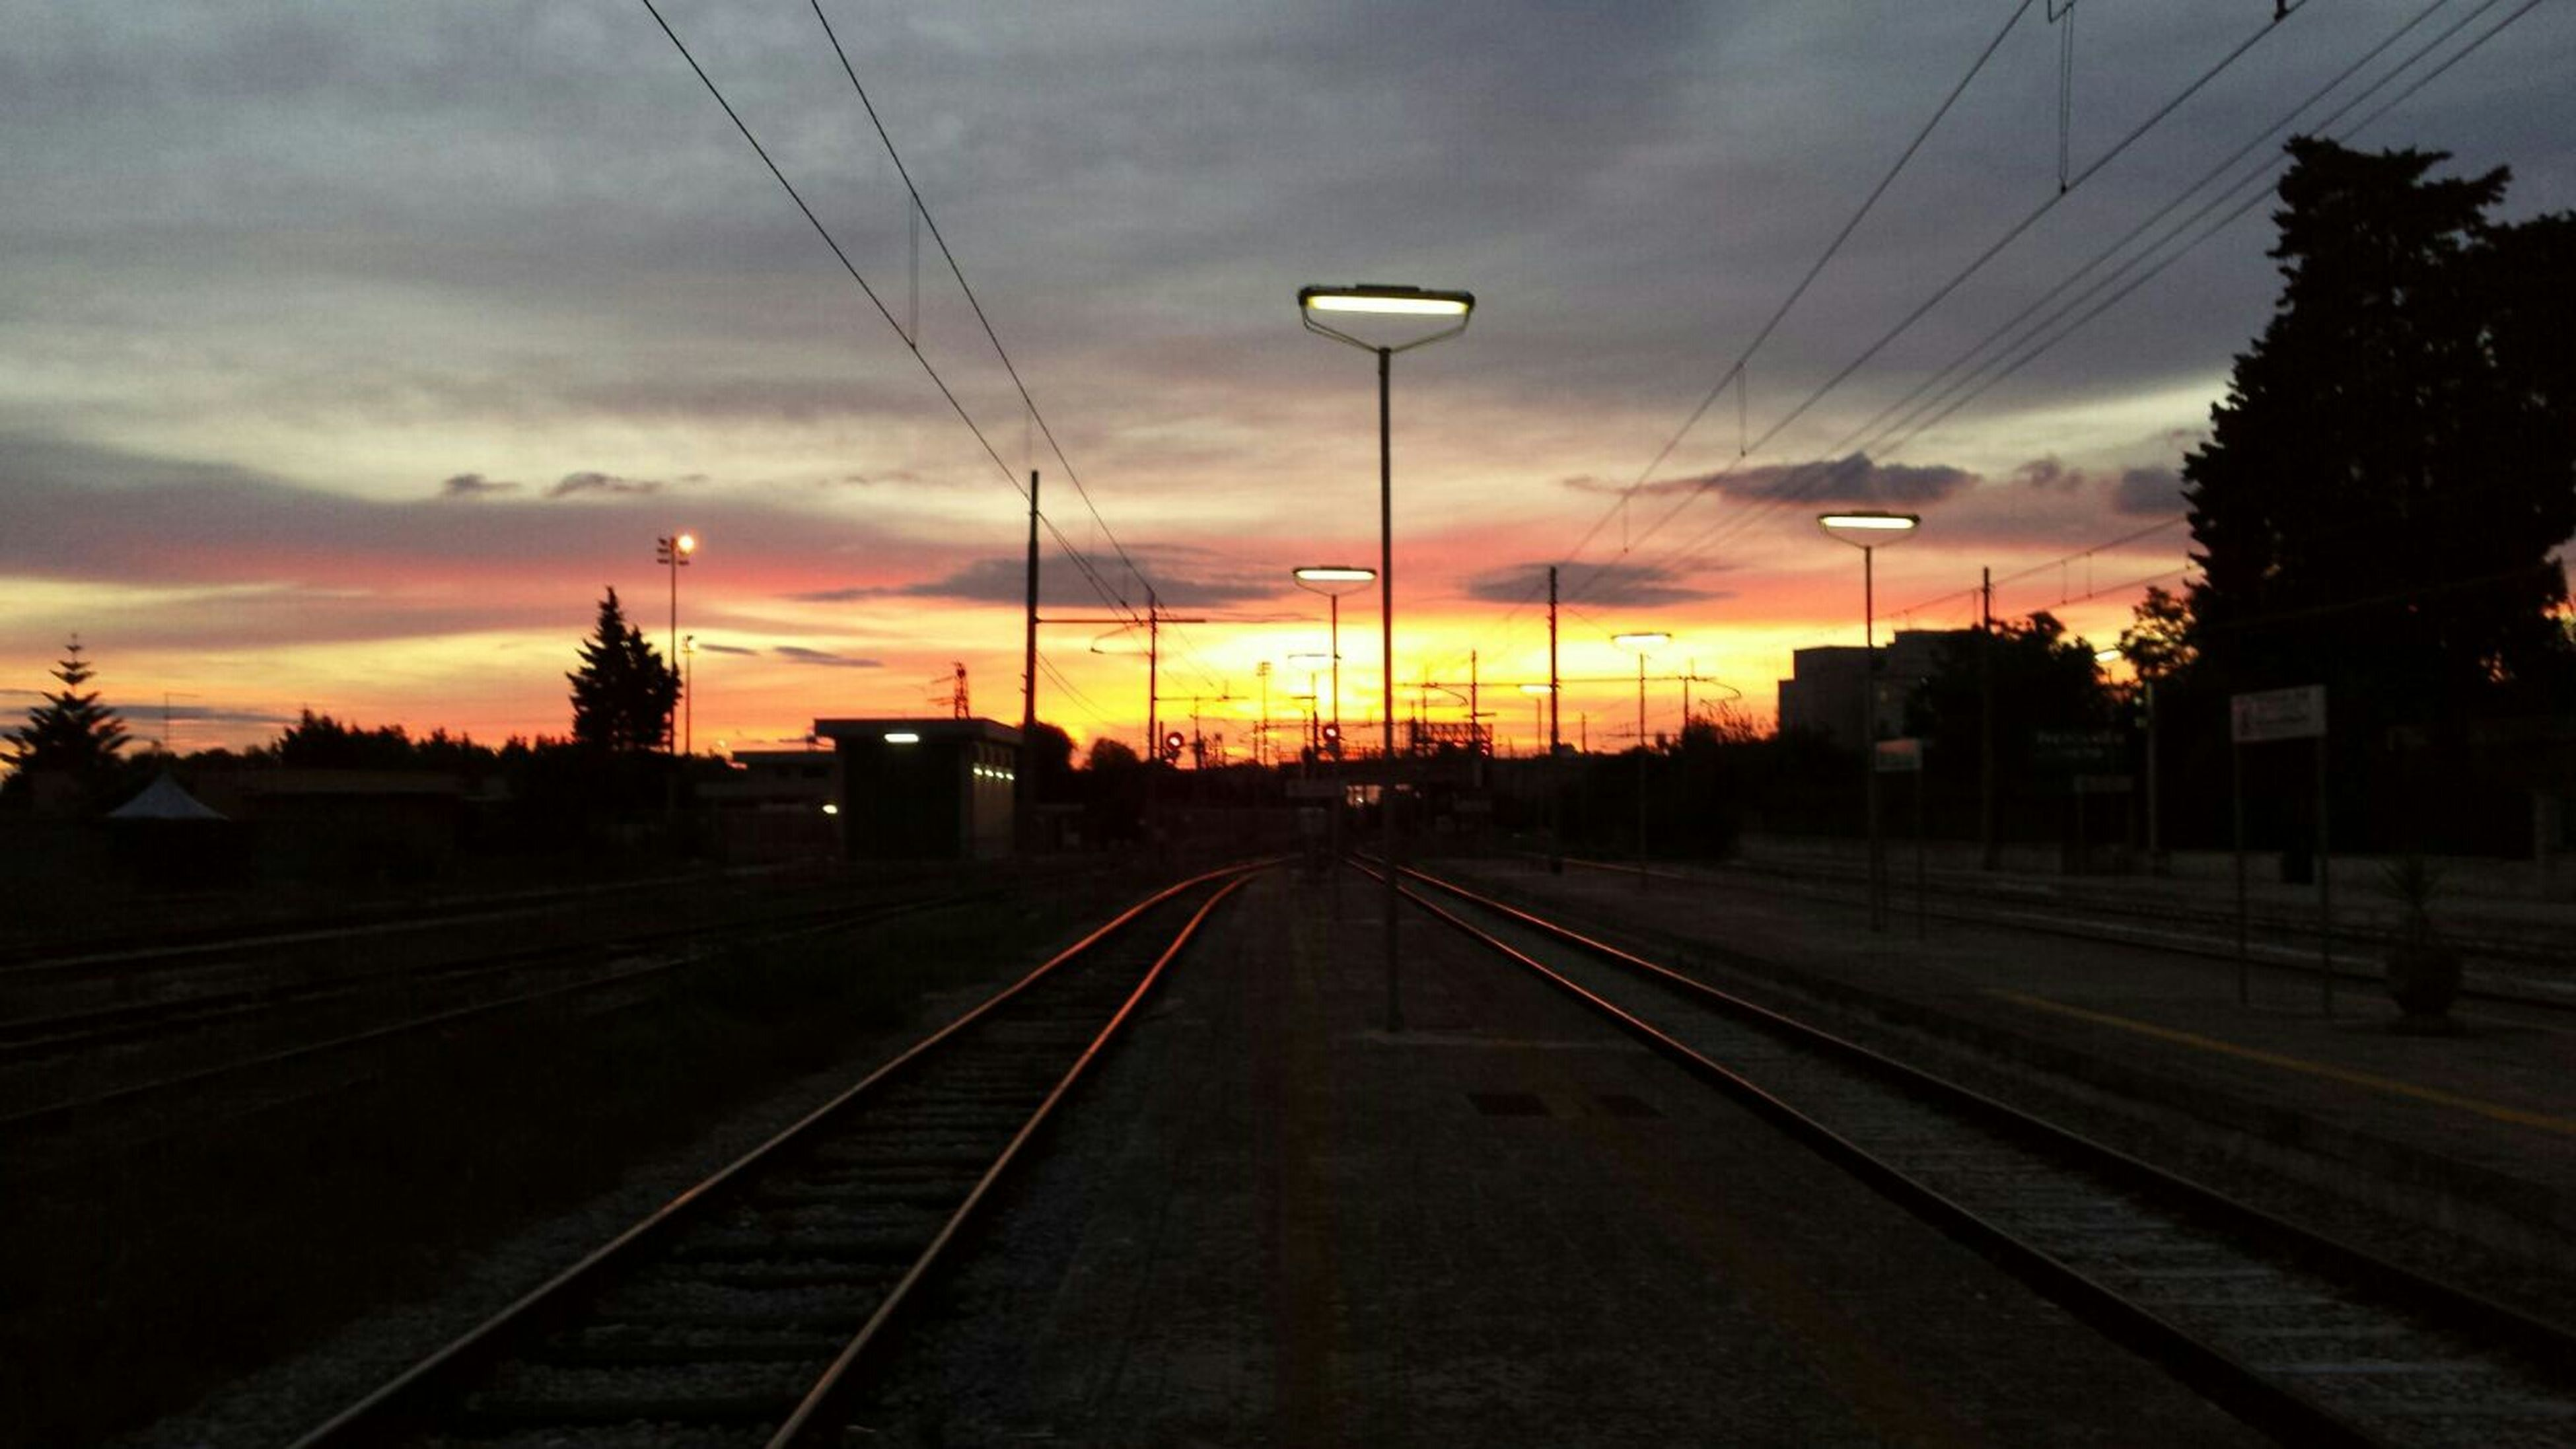 railroad track, rail transportation, transportation, sunset, public transportation, railroad station, railroad station platform, sky, power line, electricity pylon, cloud - sky, the way forward, train - vehicle, diminishing perspective, electricity, railway track, cable, travel, power supply, vanishing point